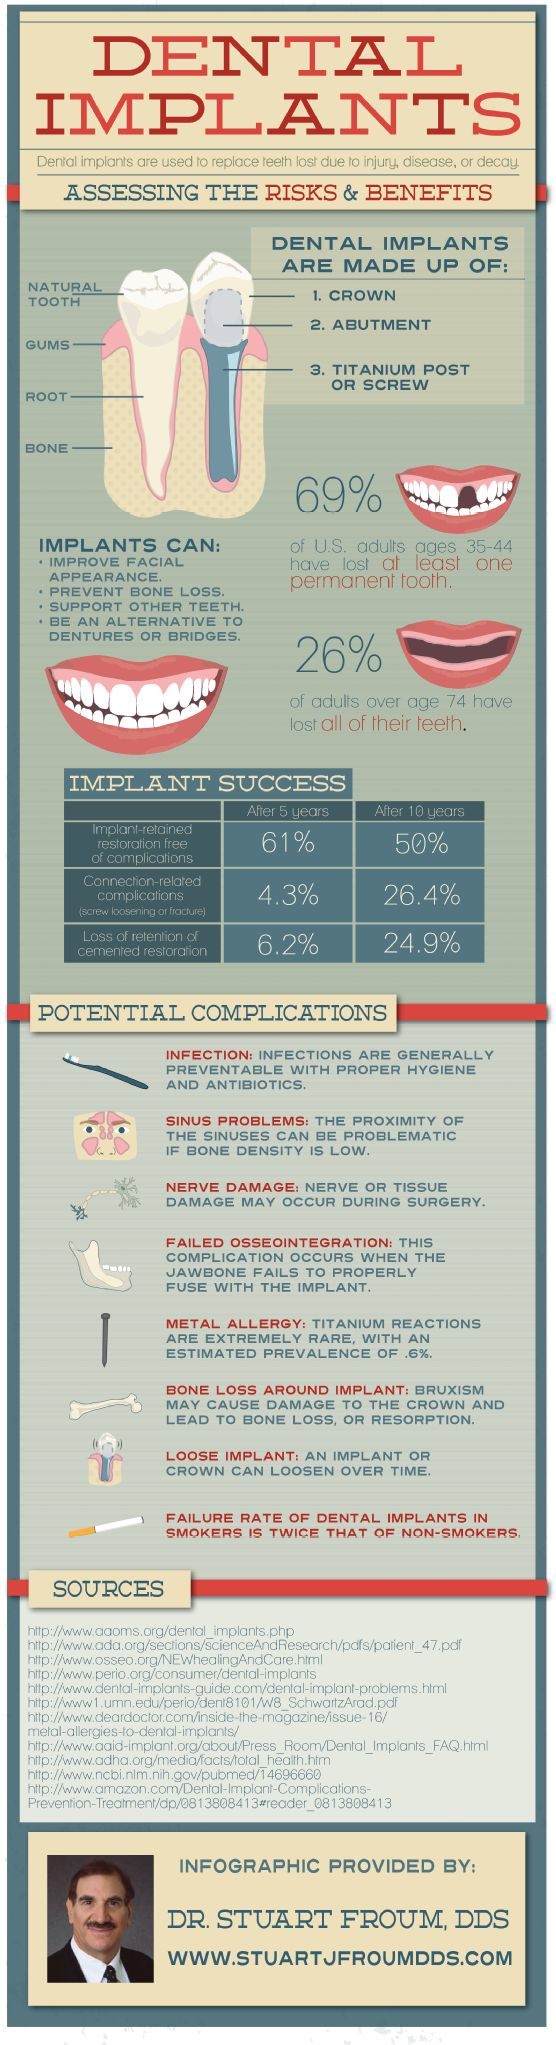 assessing the risks and benefits of dental implants